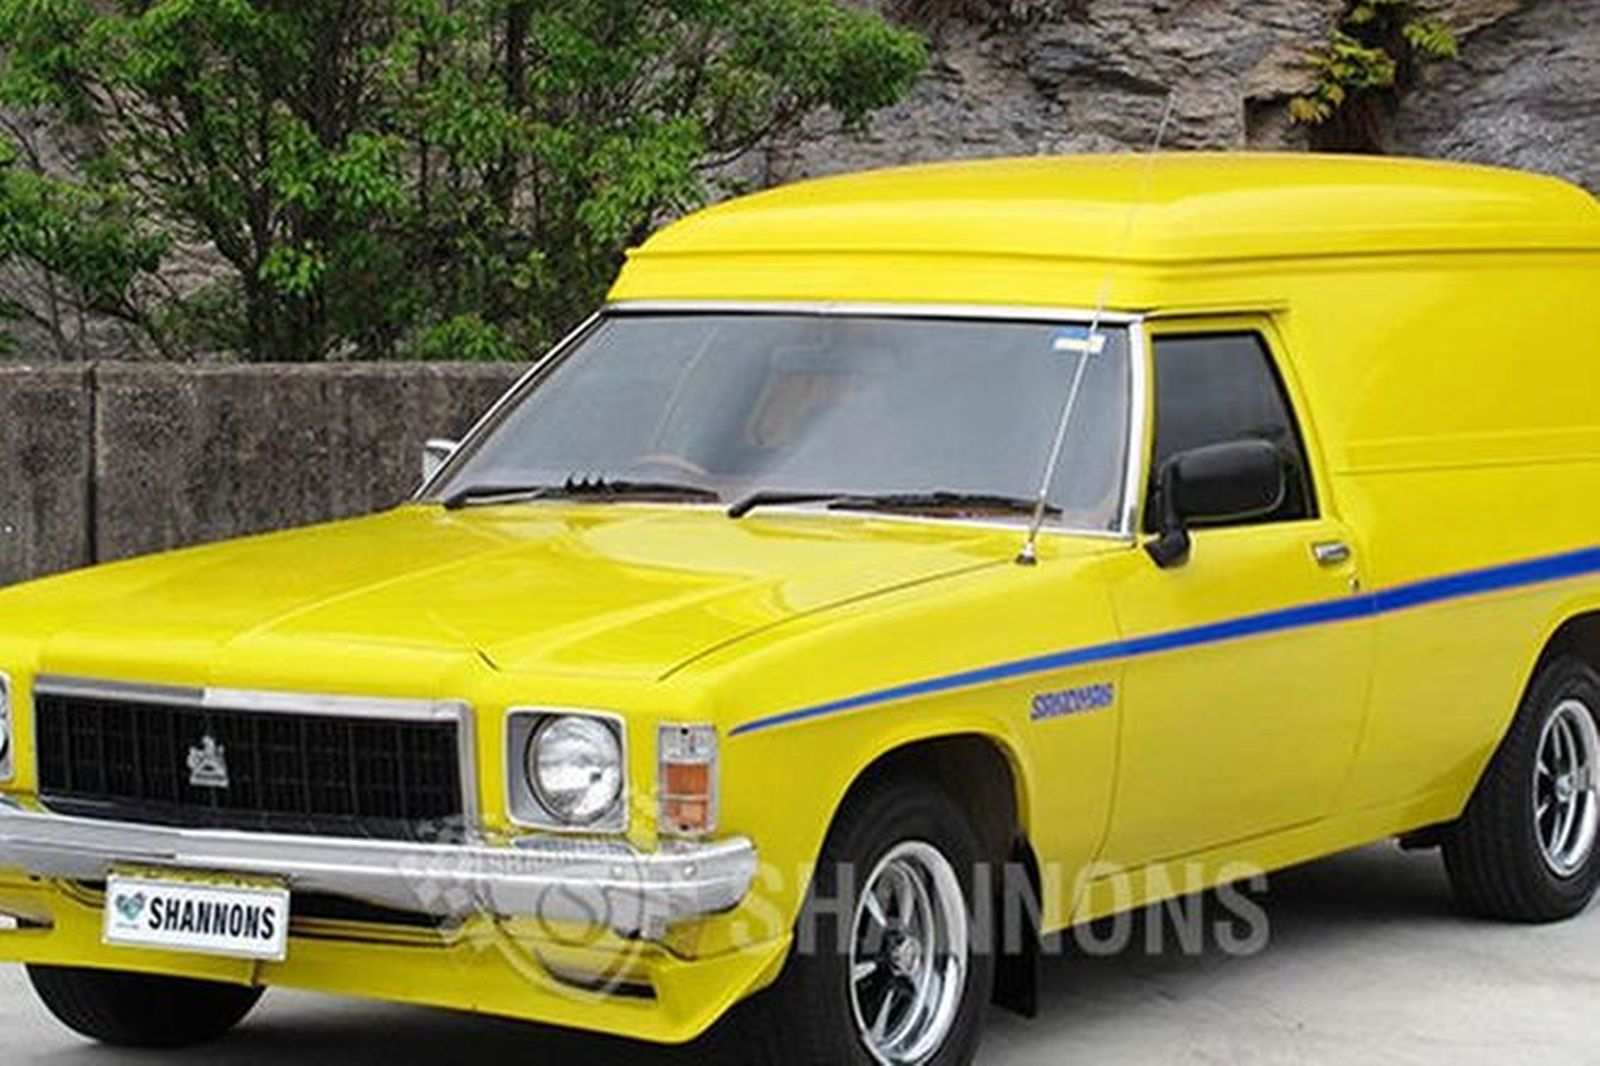 Holden HX Panel Van (Sandman look alike)